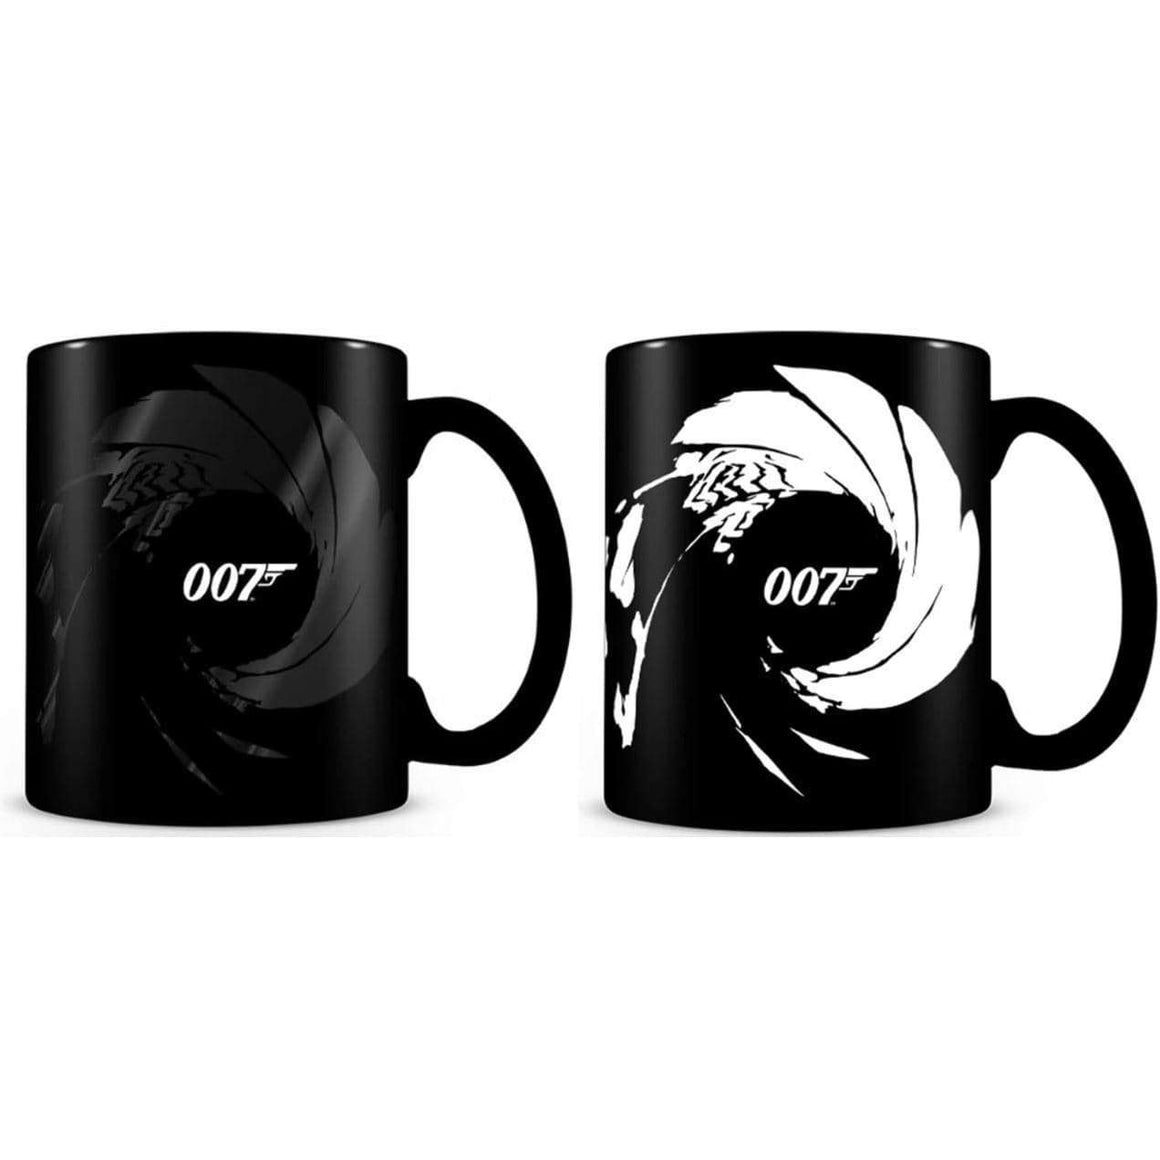 Heat Change 007 Gun Barrel Mug